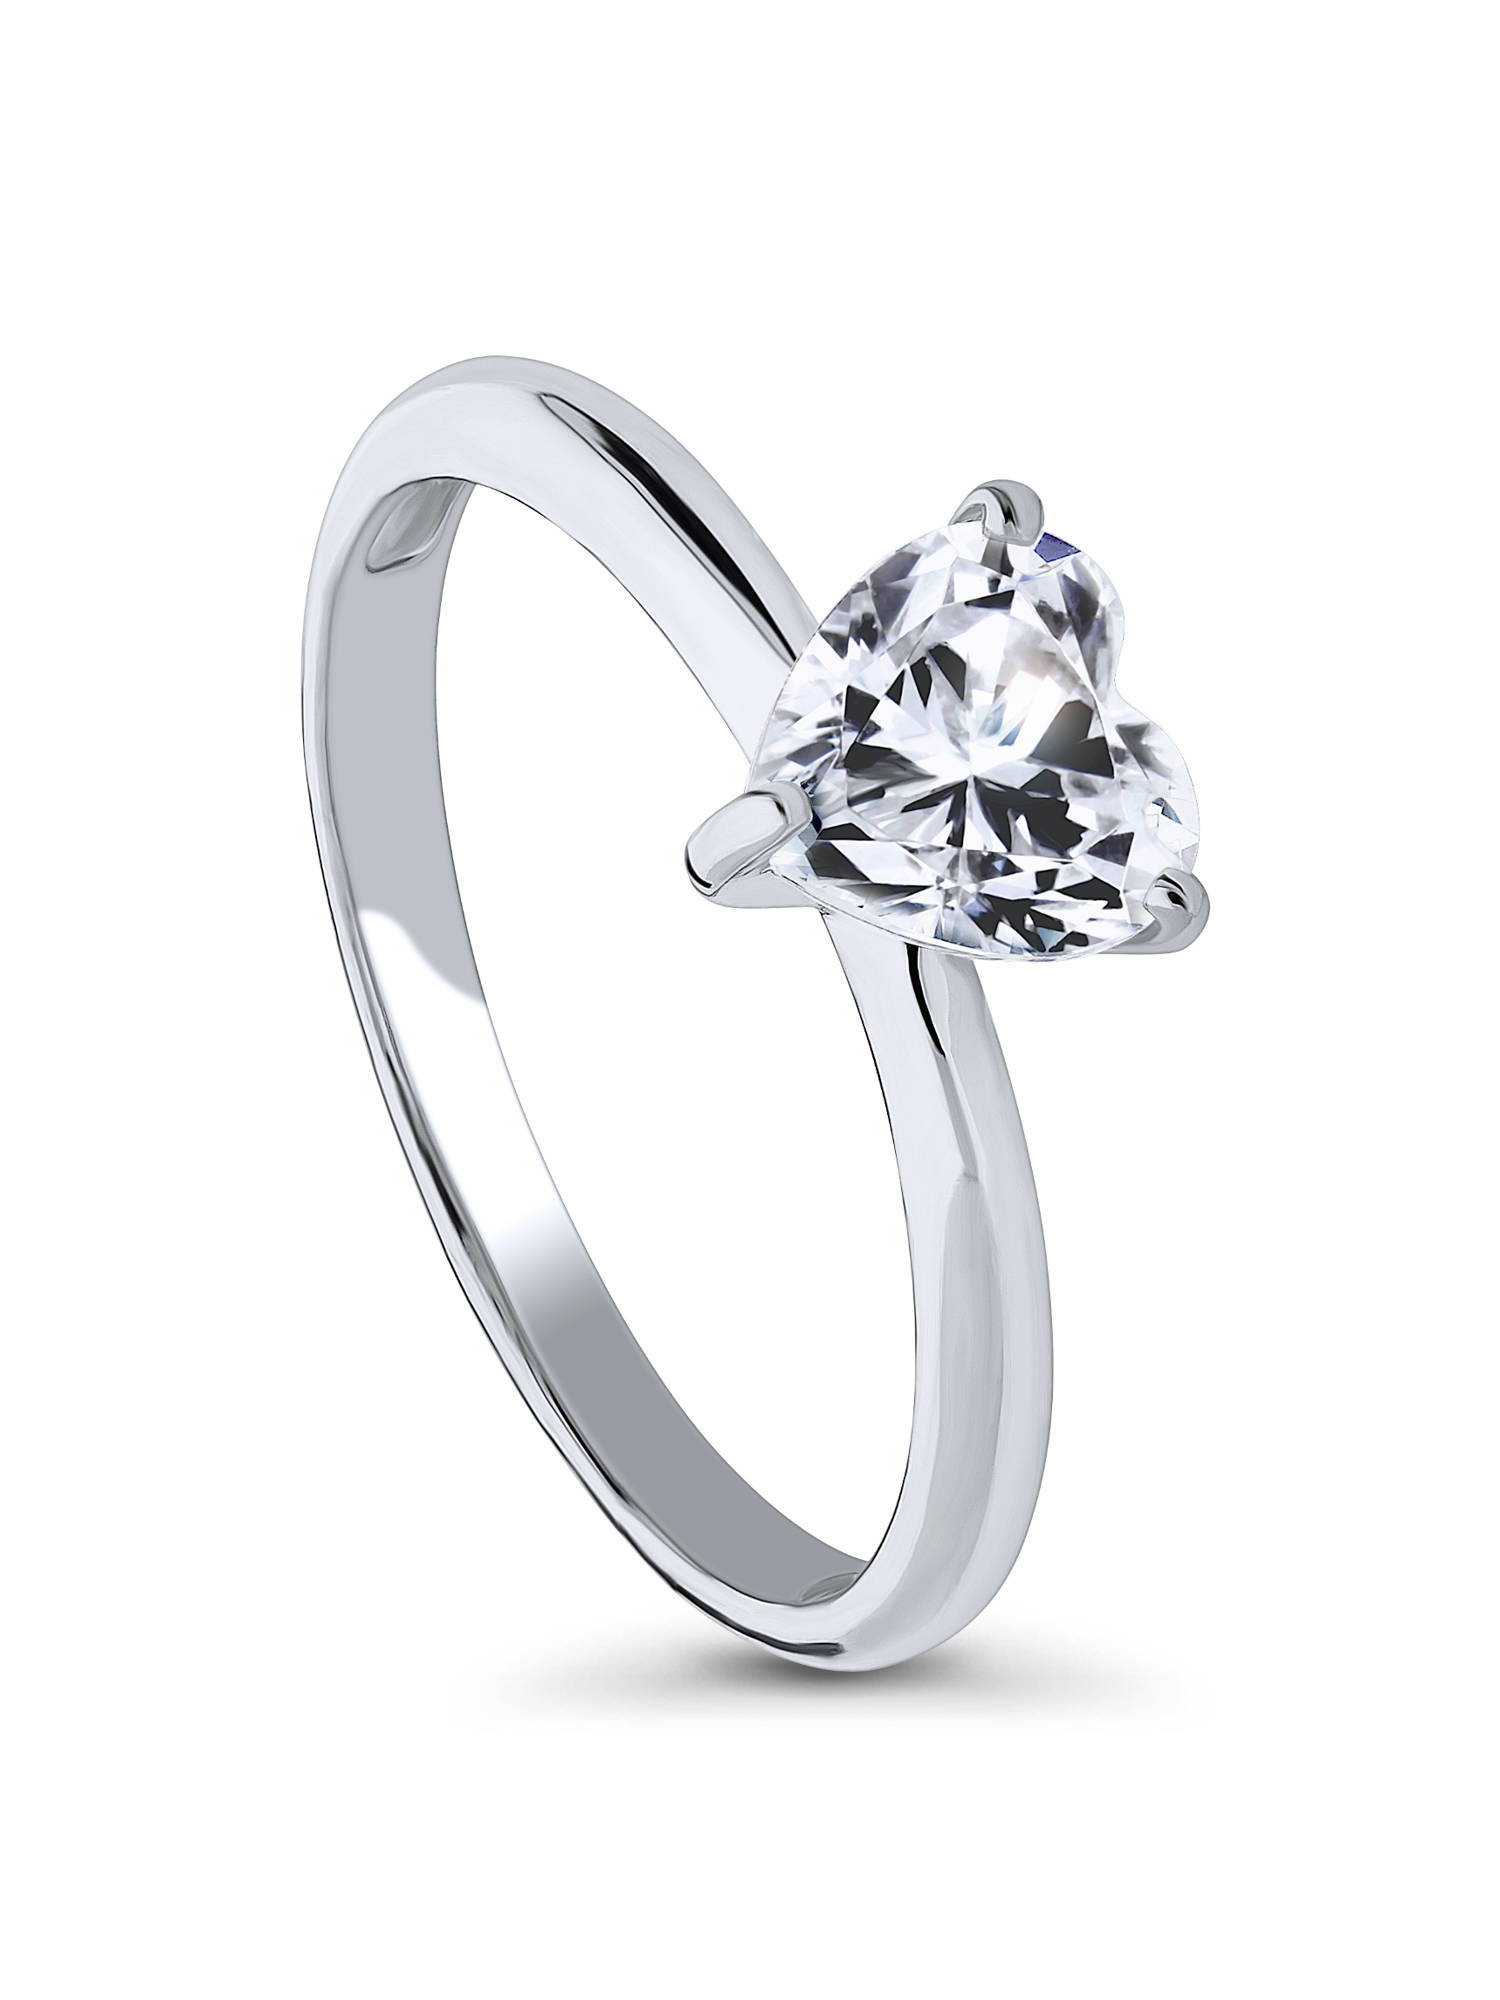 Rhodium Plated Silver Heart Shaped Cubic Zirconia CZ Solitaire Promise Engagement Ring Size 10.5